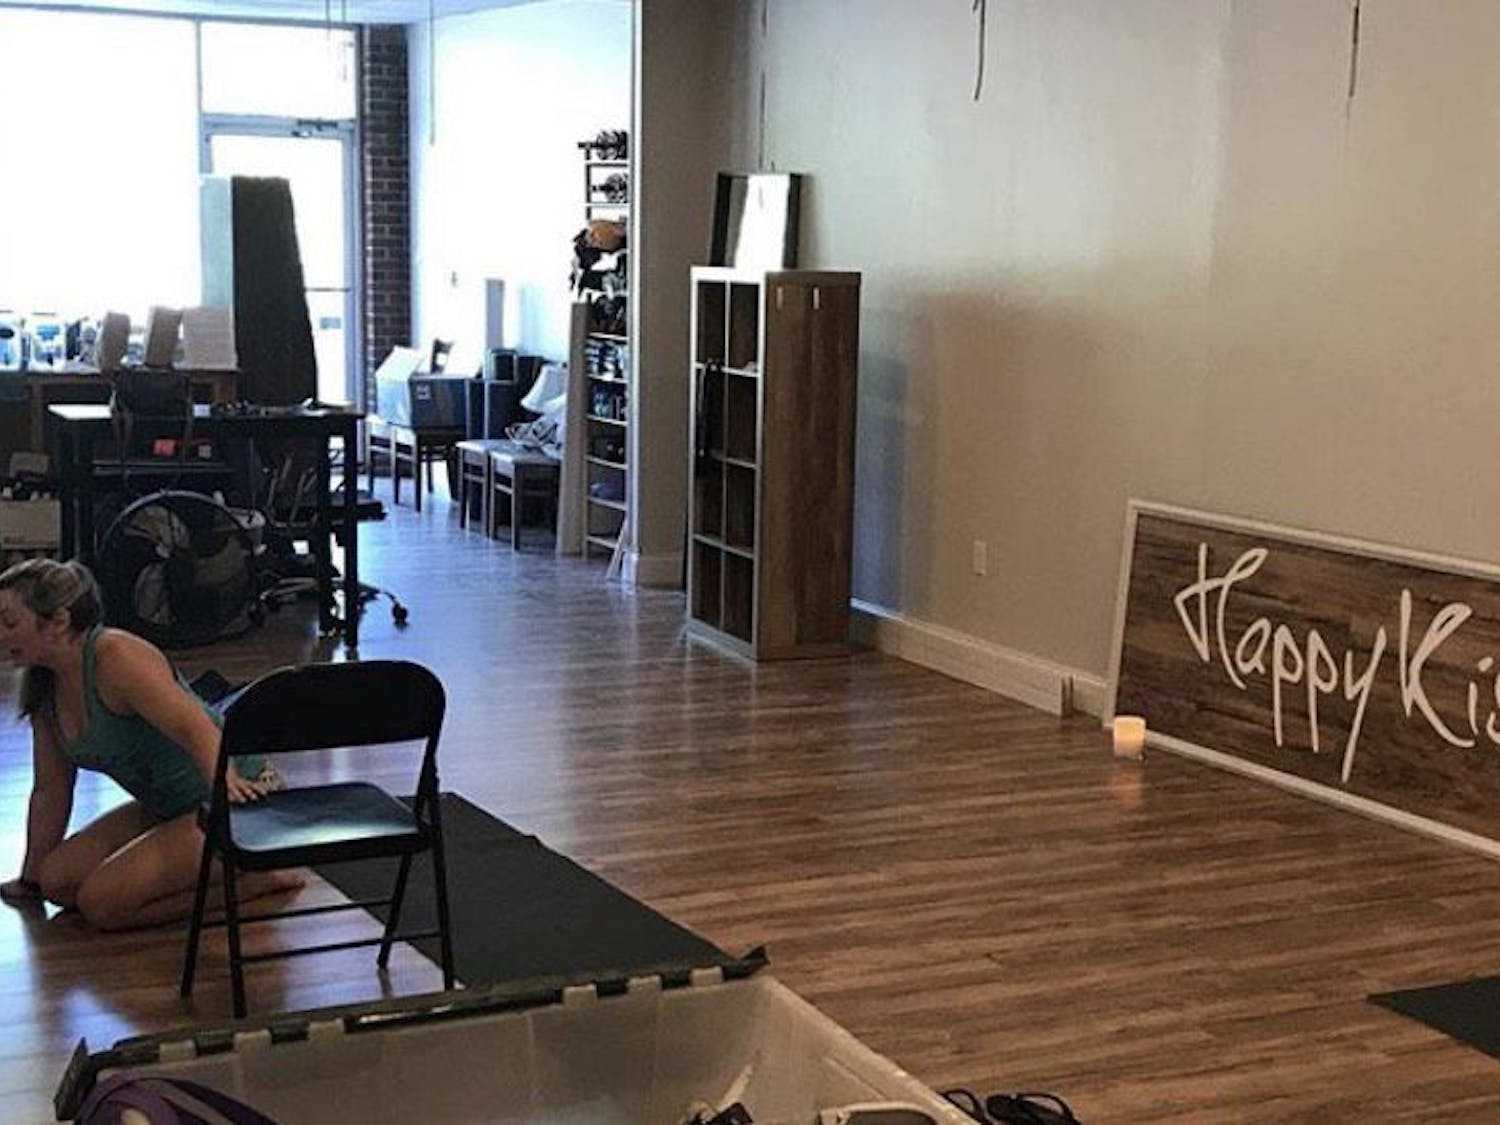 Anne Saville, an instructor at Happy Kiss Pole Fitness teaches one of her first virtual classes during the studio's closure.